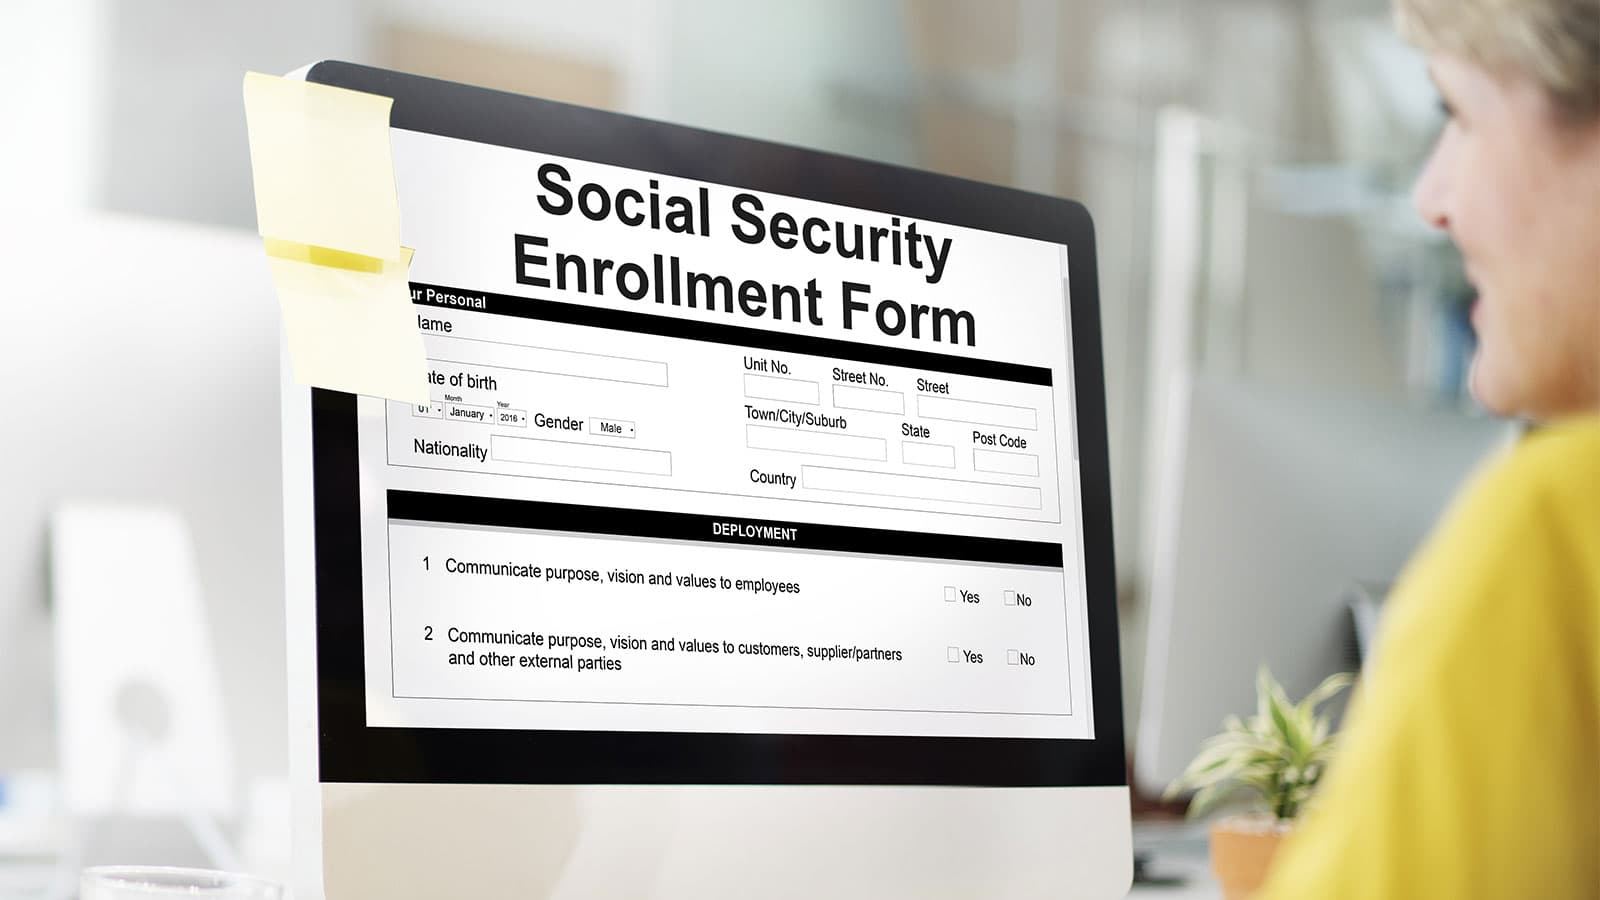 Eddy & Schein can help you understand Social Security.